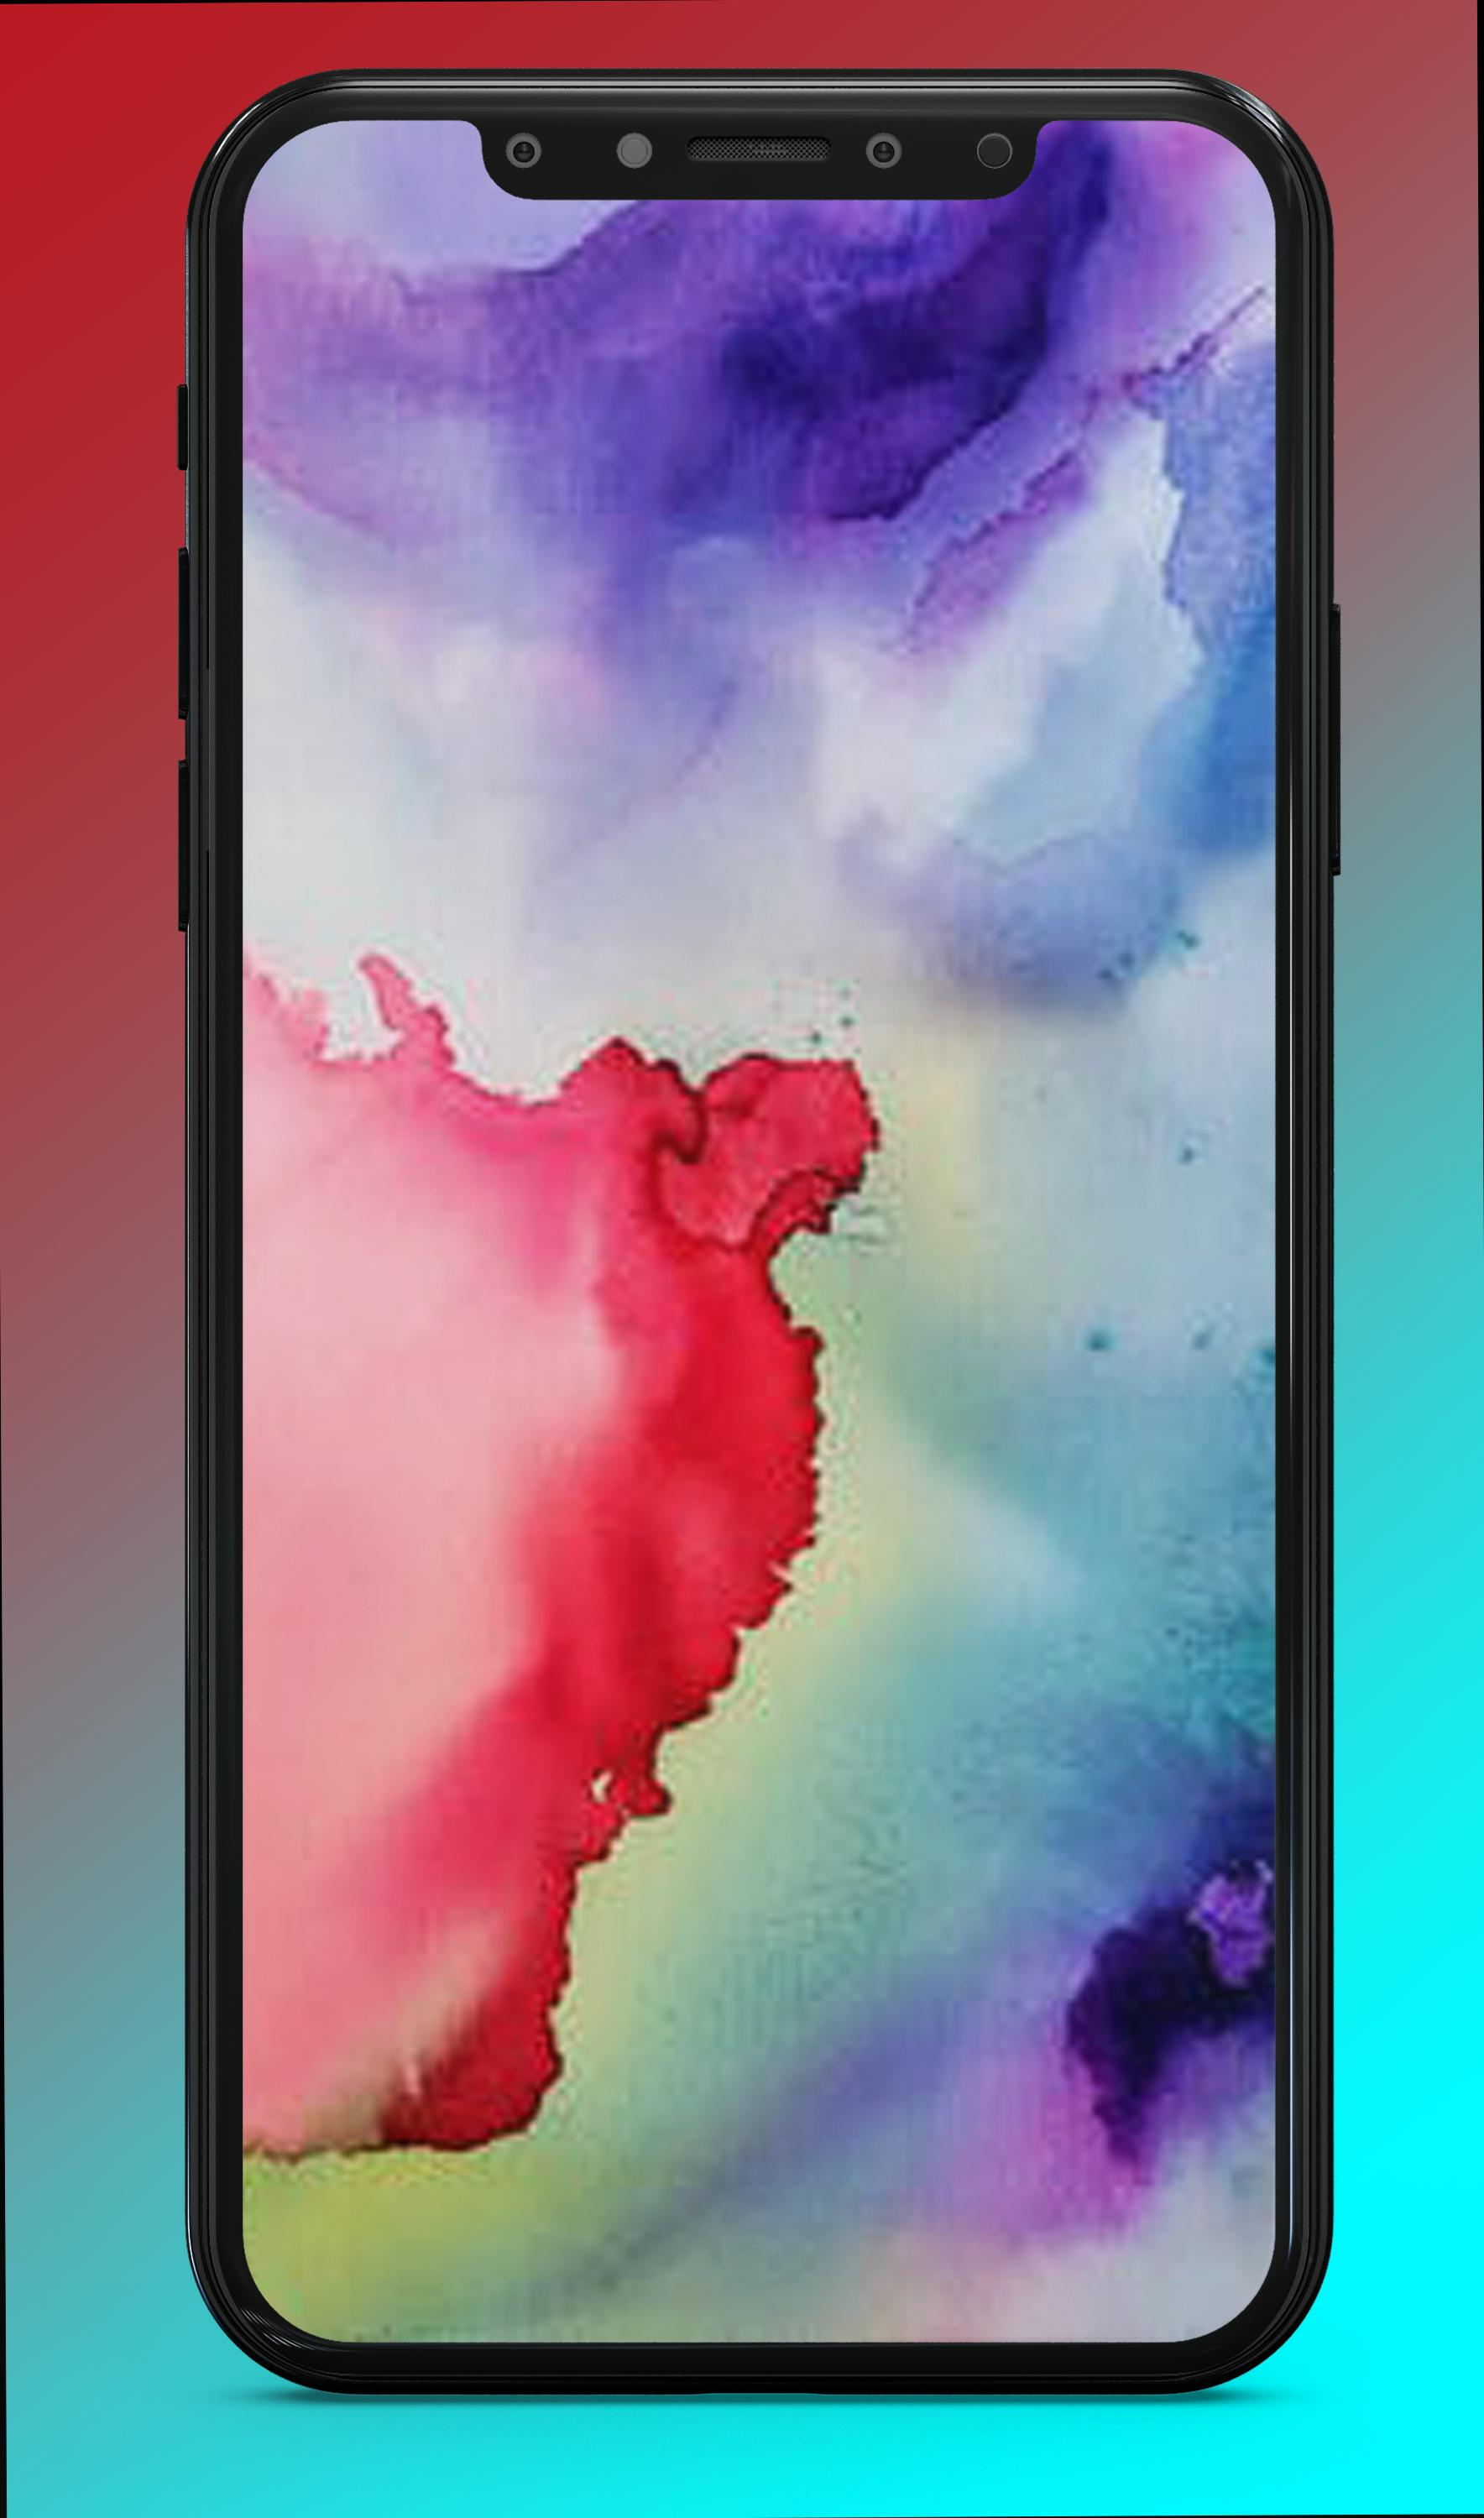 Best Wallpapers 2020 For Android Apk Download